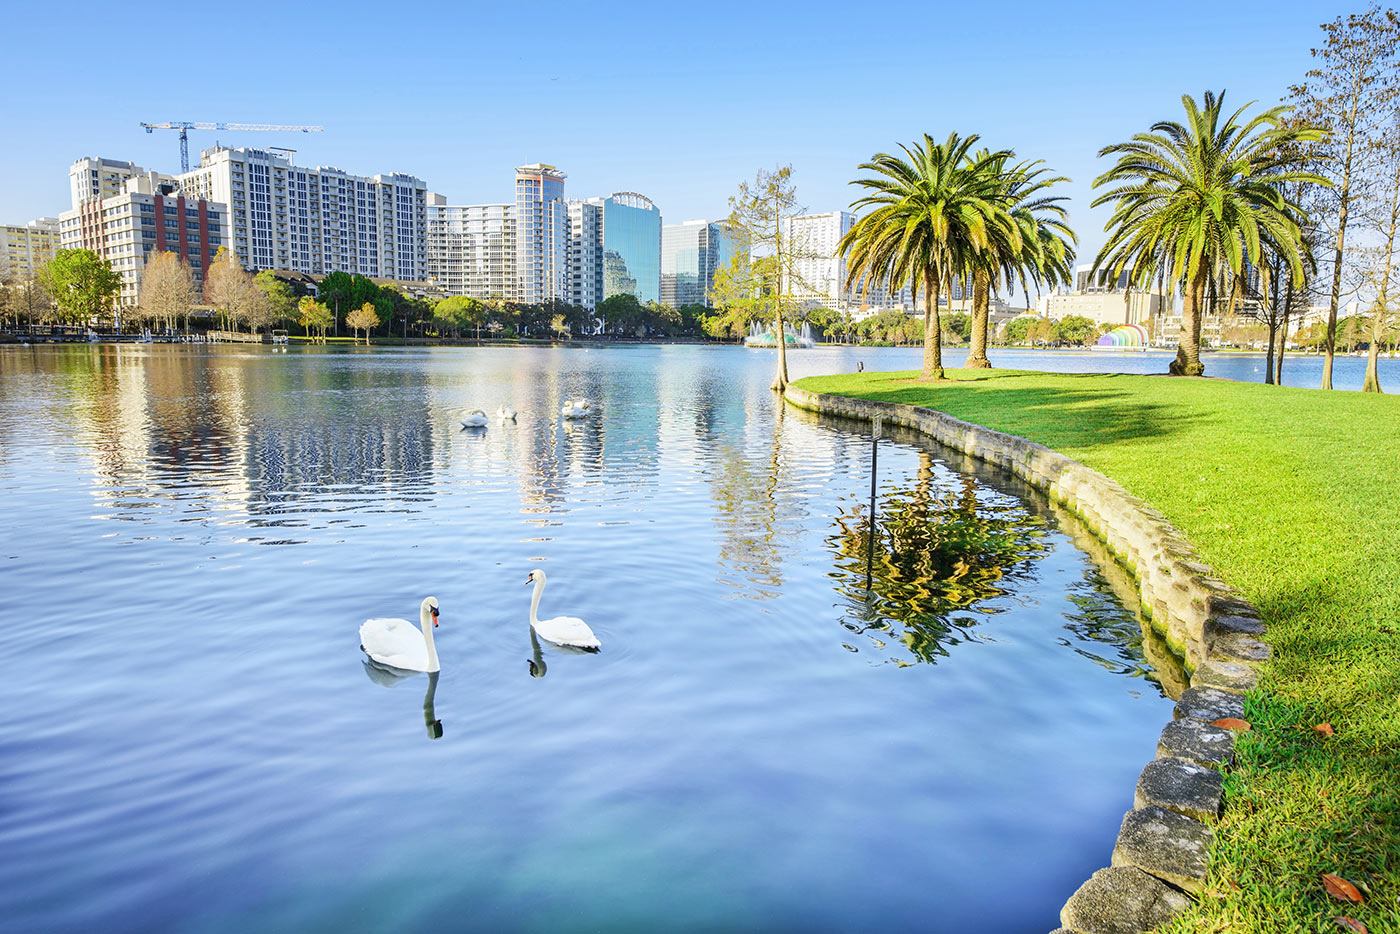 florida weather and wildlife for rehab recovery facility and rehab services